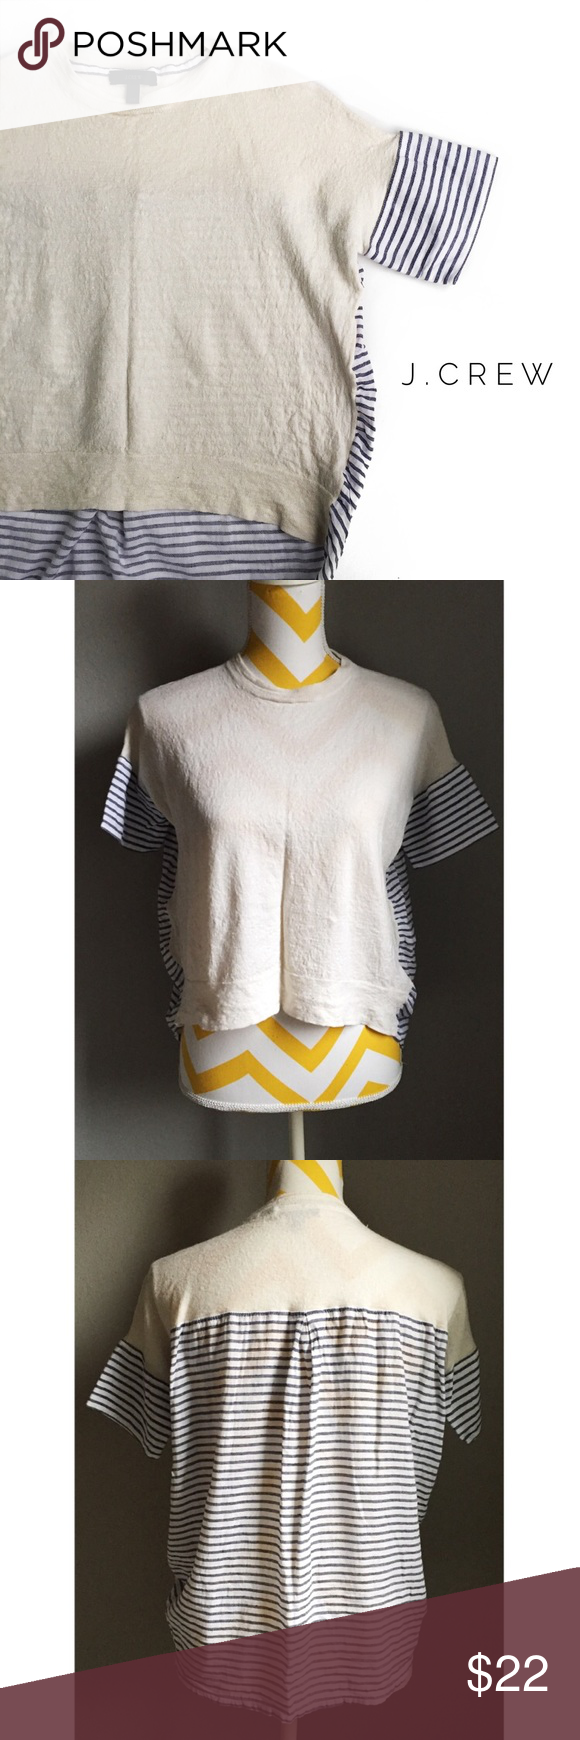 • j.crew wool blend knit top • condition: pre-owned. this knit top is in great condition and so cute! the front is a wool blend and the back is a cotton blend. the fit is a high low top. can fit XXS, XS, and can fit S but will be a bit tighter. the coloring of the stripes are a grayish blue. J. Crew Tops